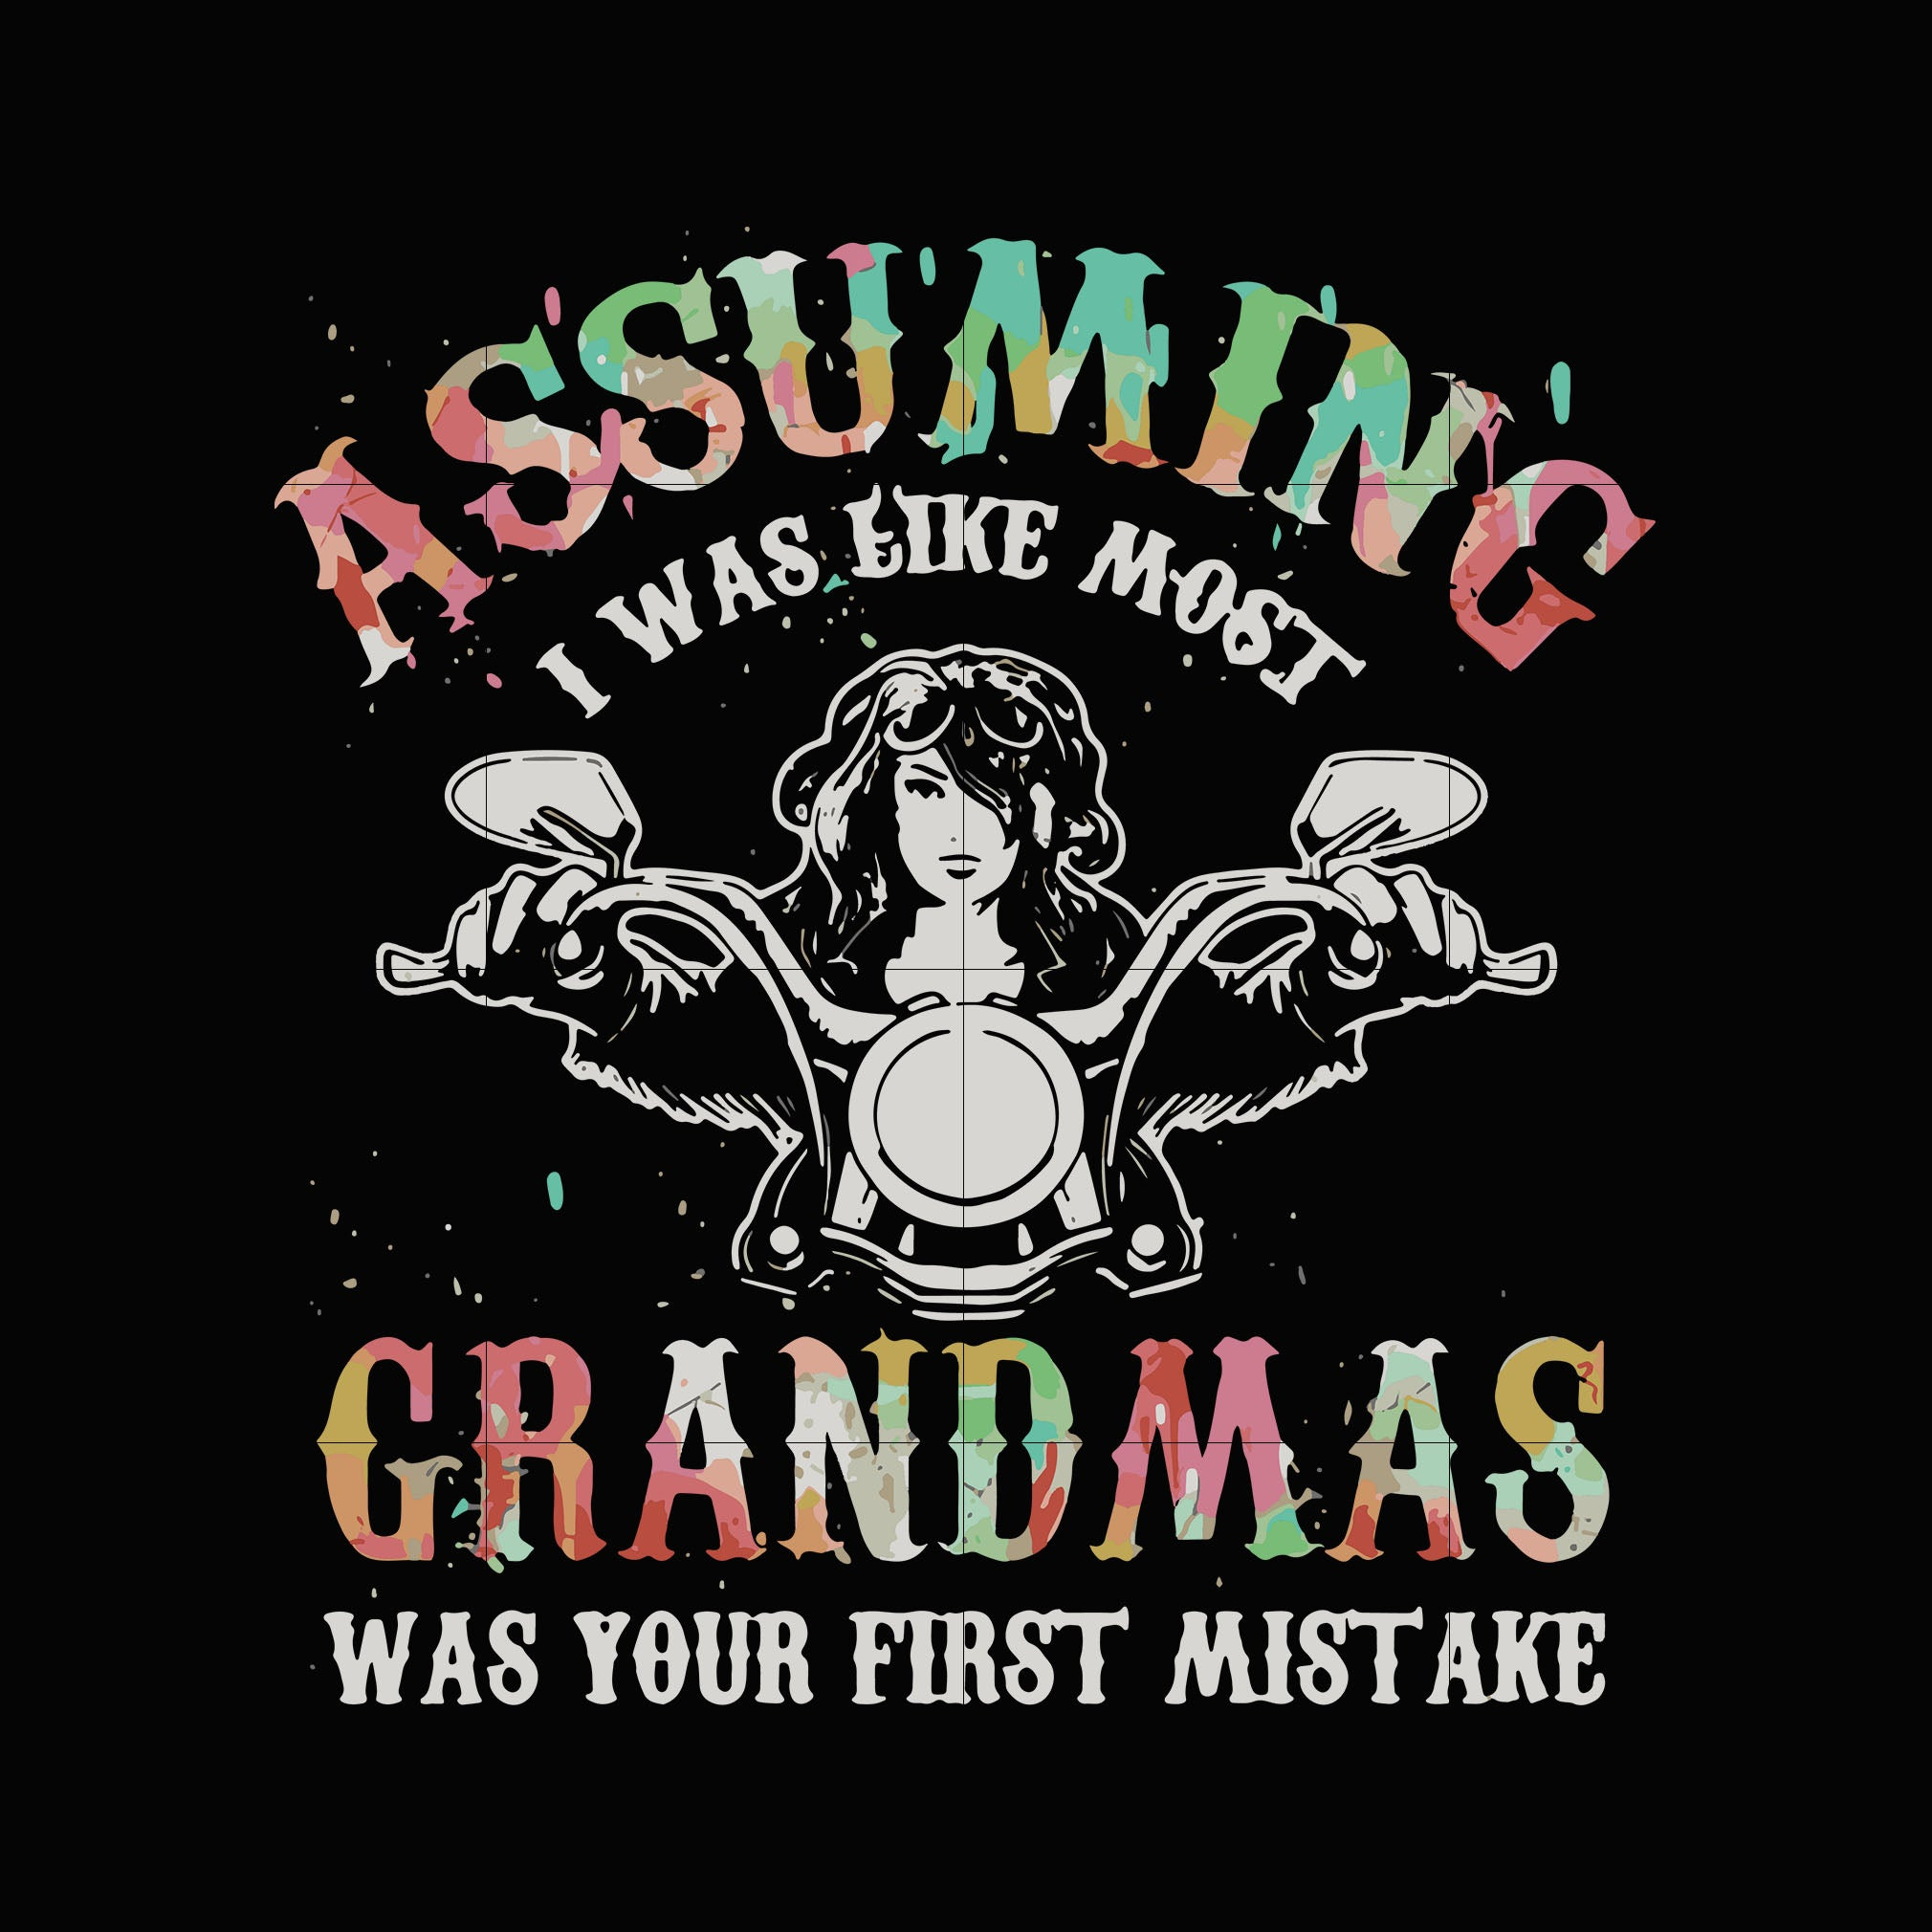 Assuming i was like most grandmas was your first mistake svg,dxf,eps,png digital file